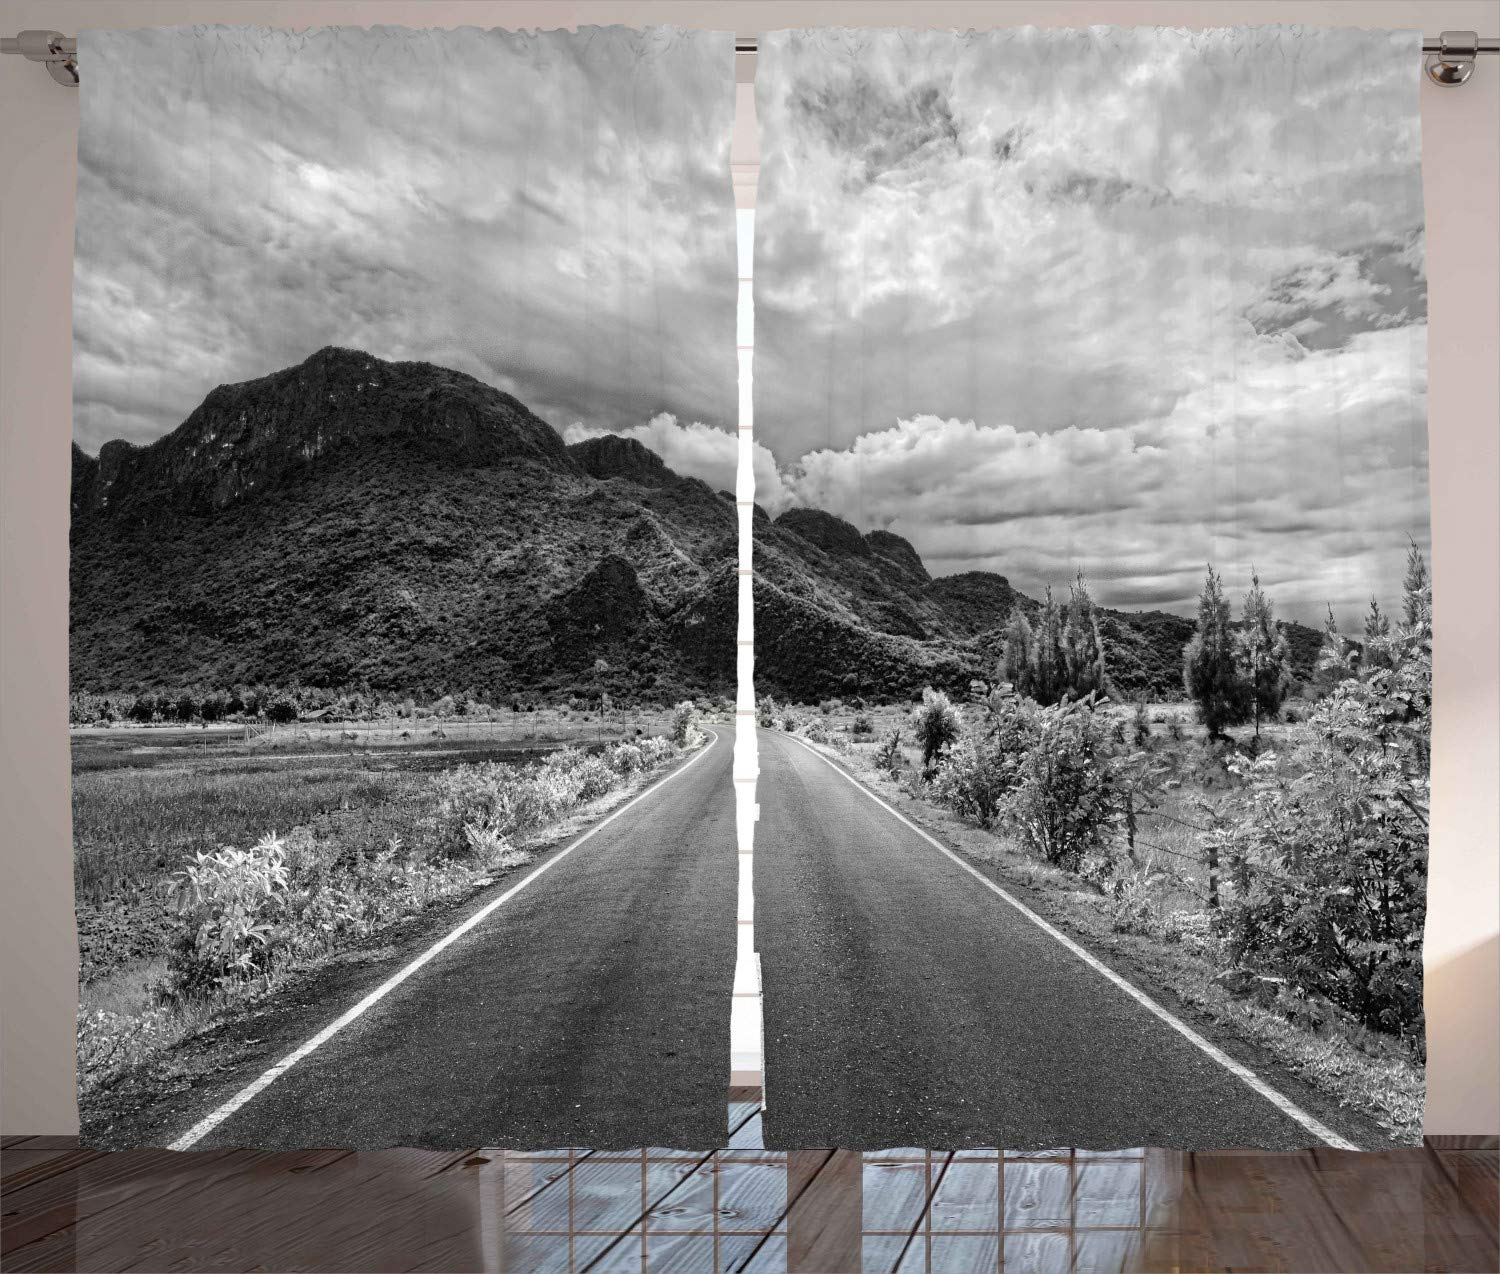 Ambesonne landscape decor curtains black and white artsy photo of the road leading to a mountain artsy panorama living room bedroom window drapes 2 panel